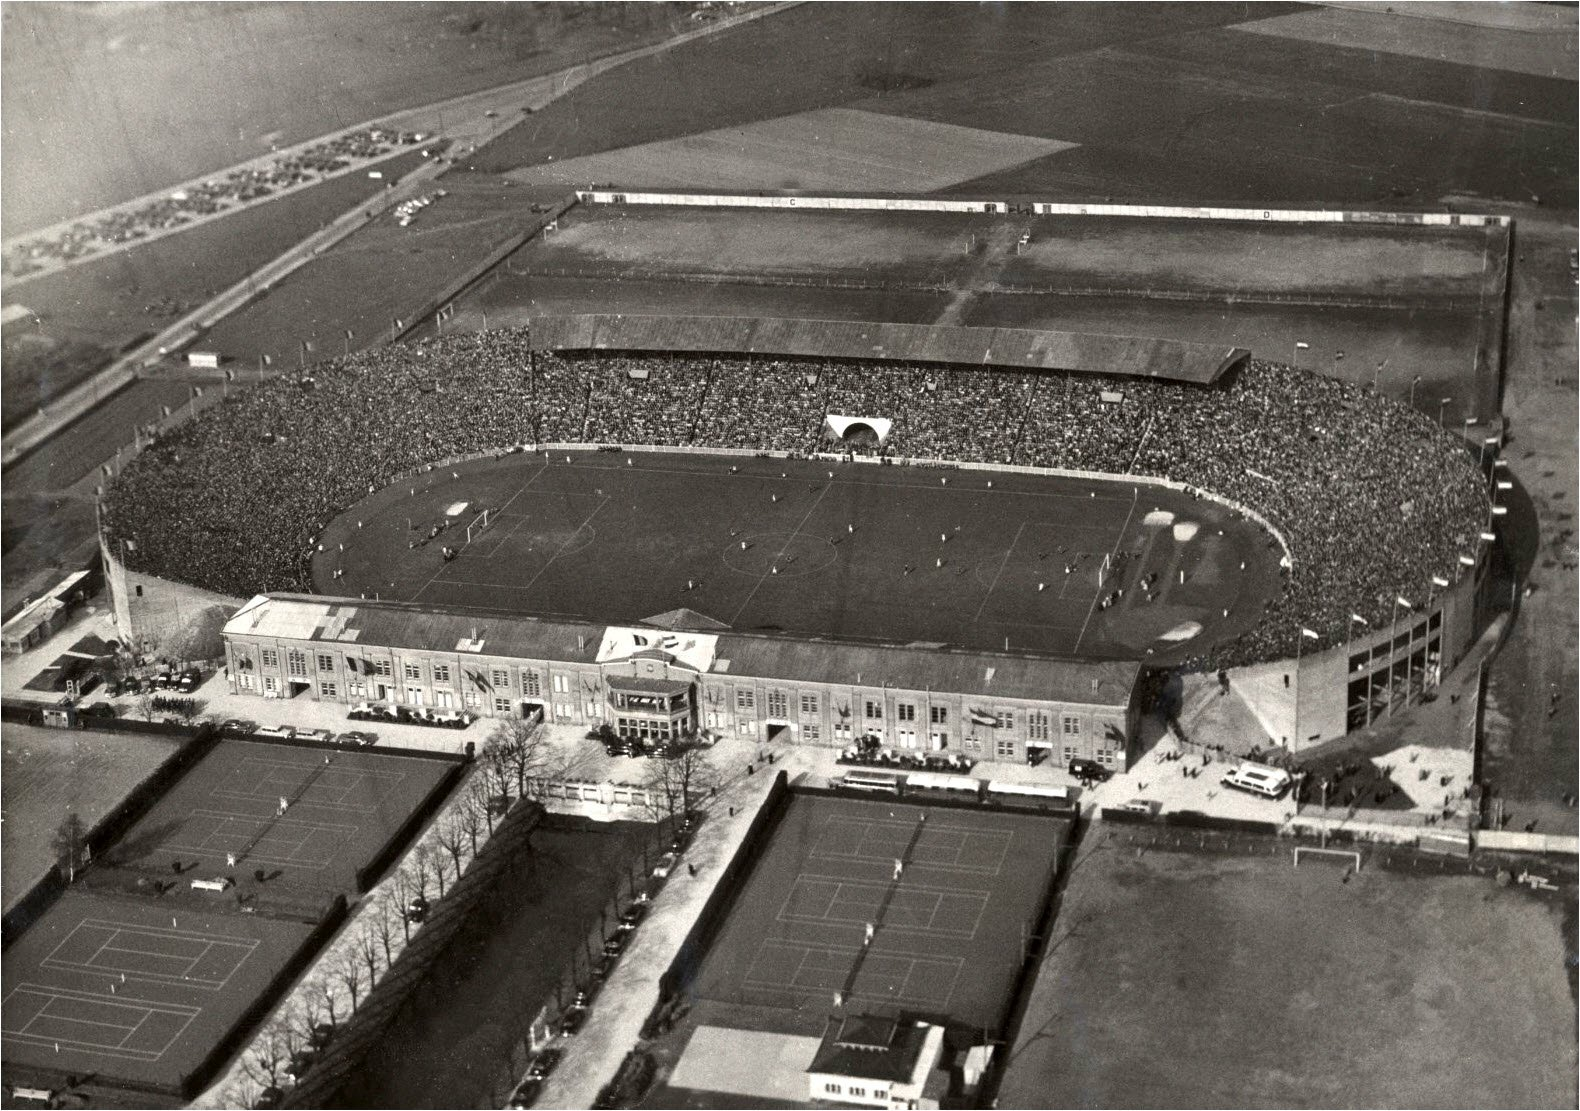 The Bosuil stadion in the glory days, full house with 68.000 fans.